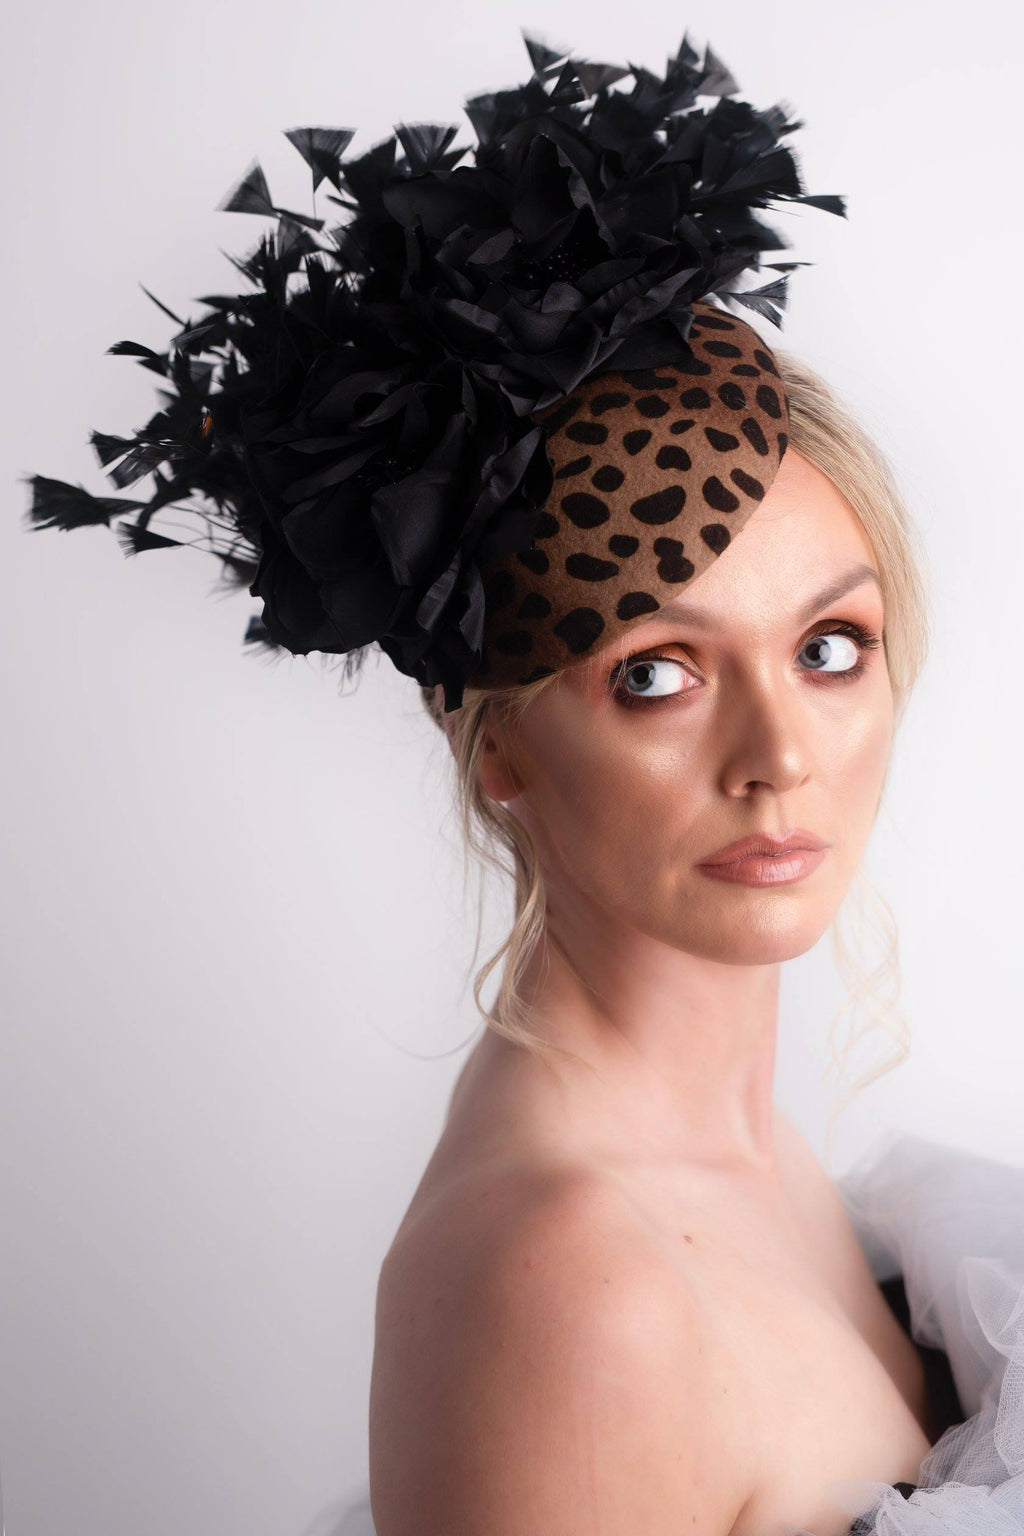 Black and Brown Felt Leopard Print Headpiece